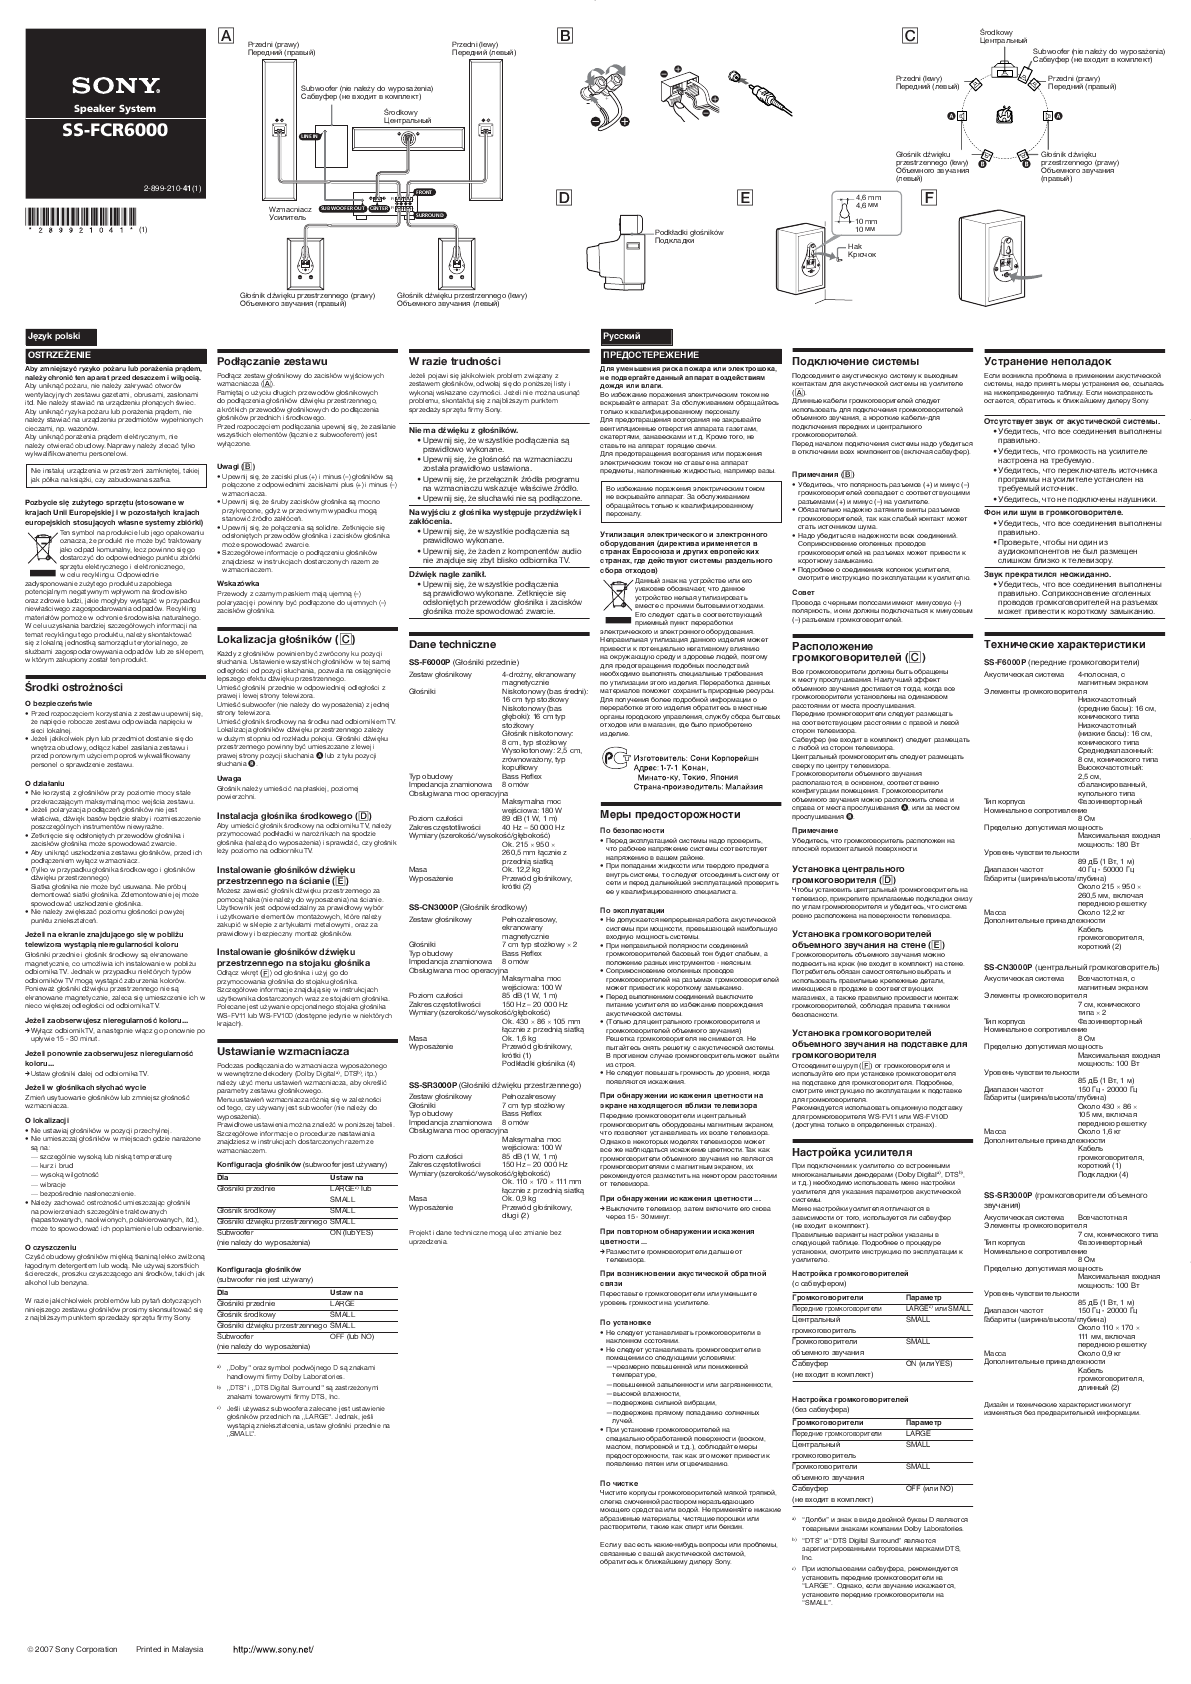 sony active speaker system manual